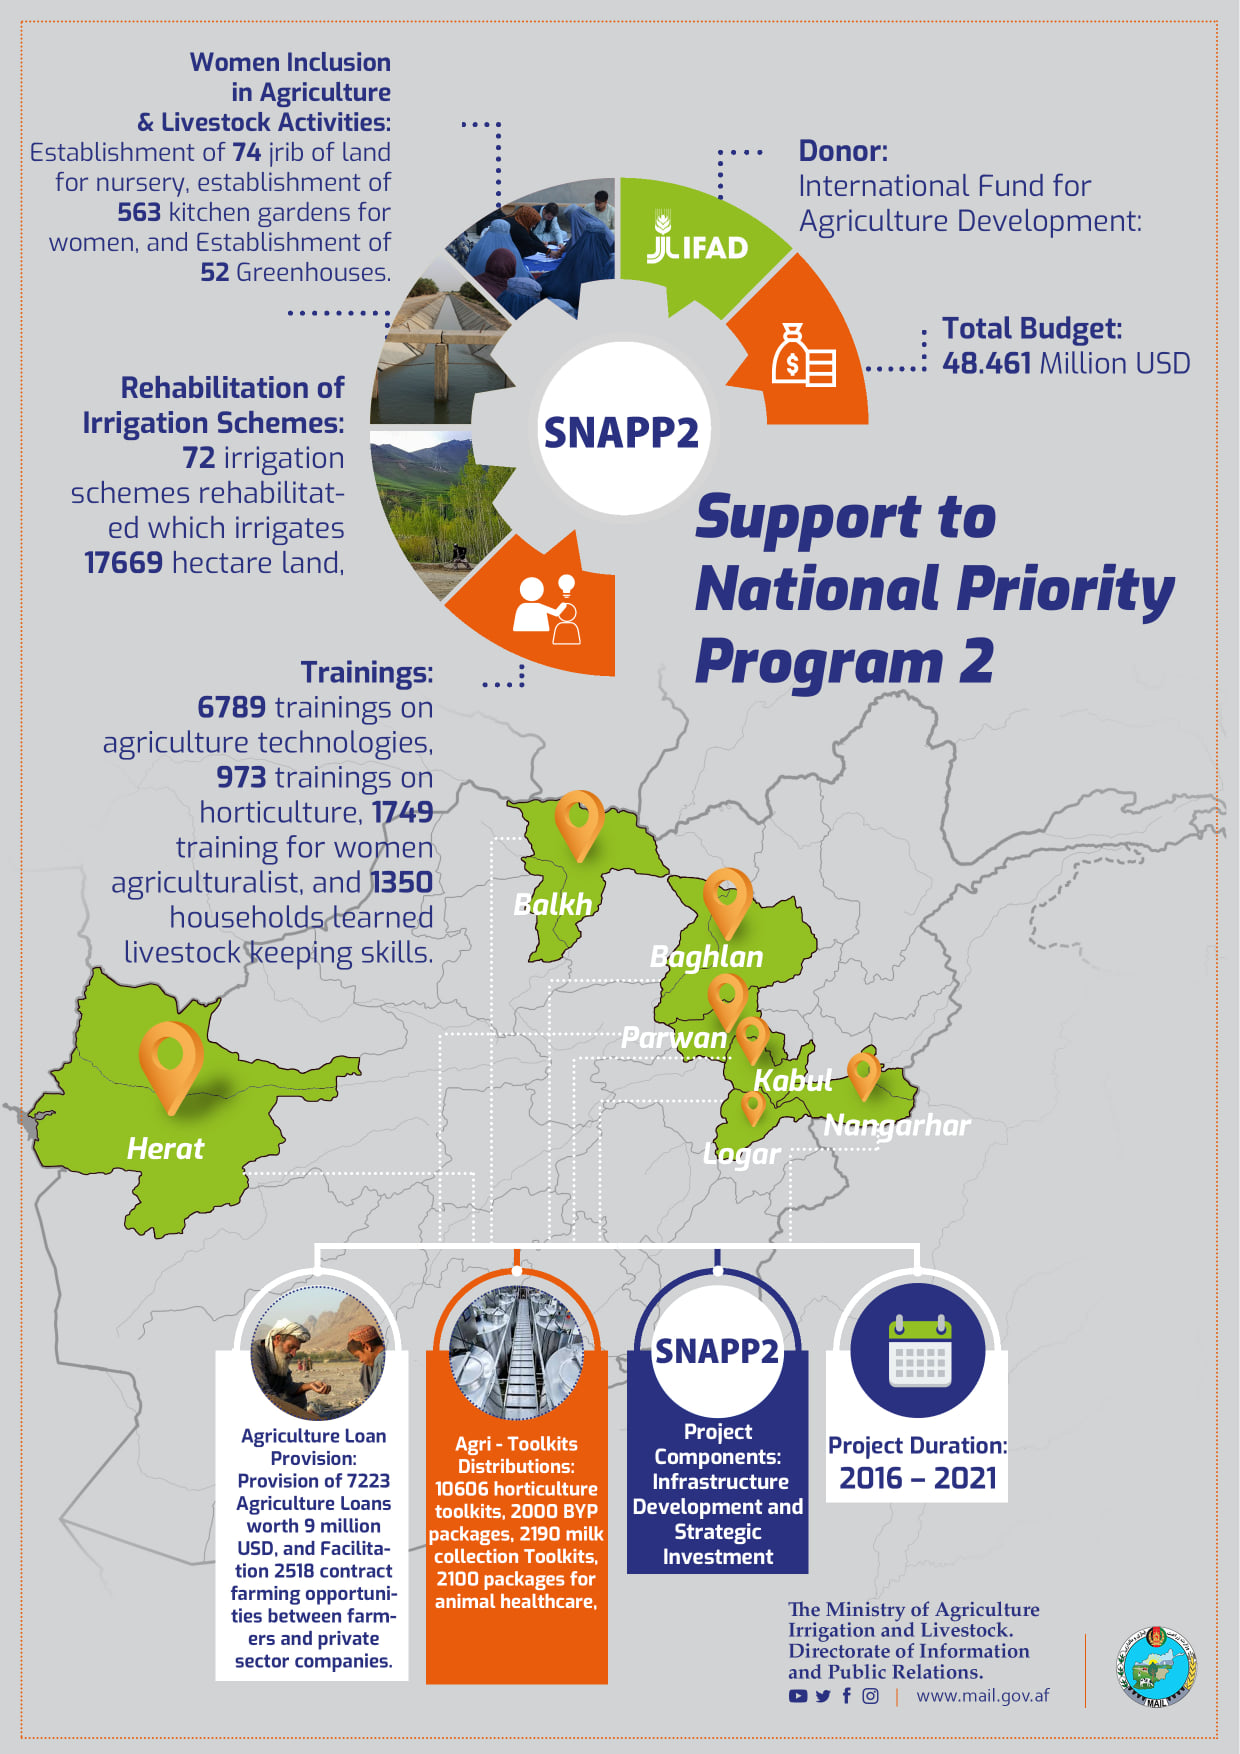 The main activities and achievements of Second National Priority Suppprt Project of the Ministry of Agriculture, Irrigation and Livestock.